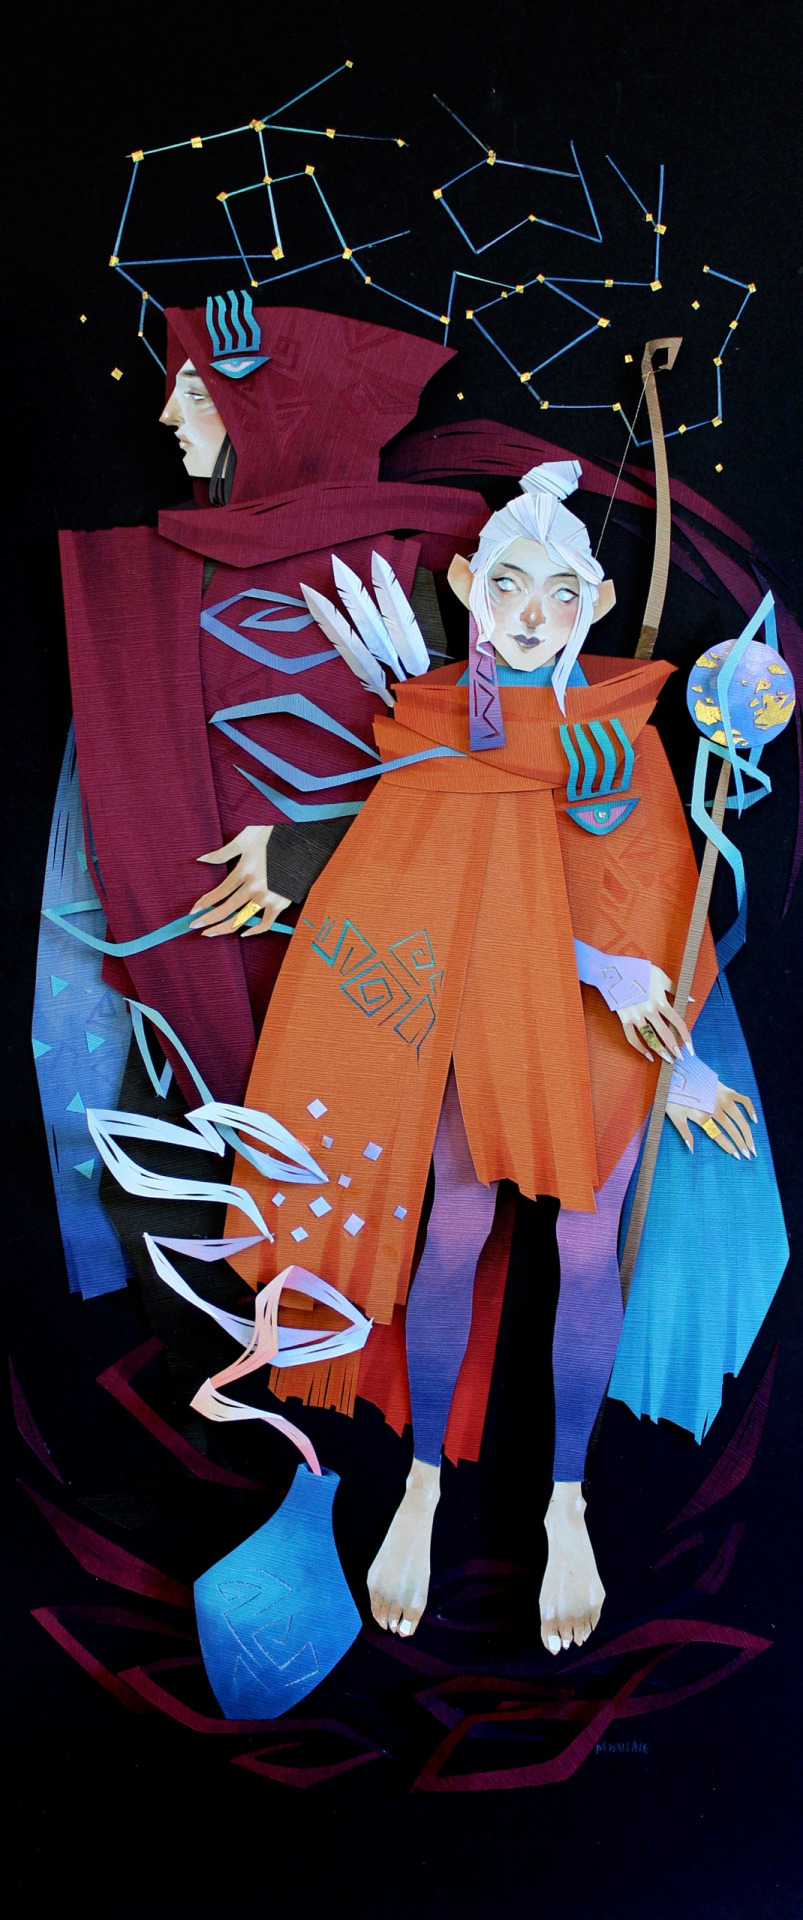 Vibrant Mythical Scenes in Cut Paper Collage by Morgana Wallace